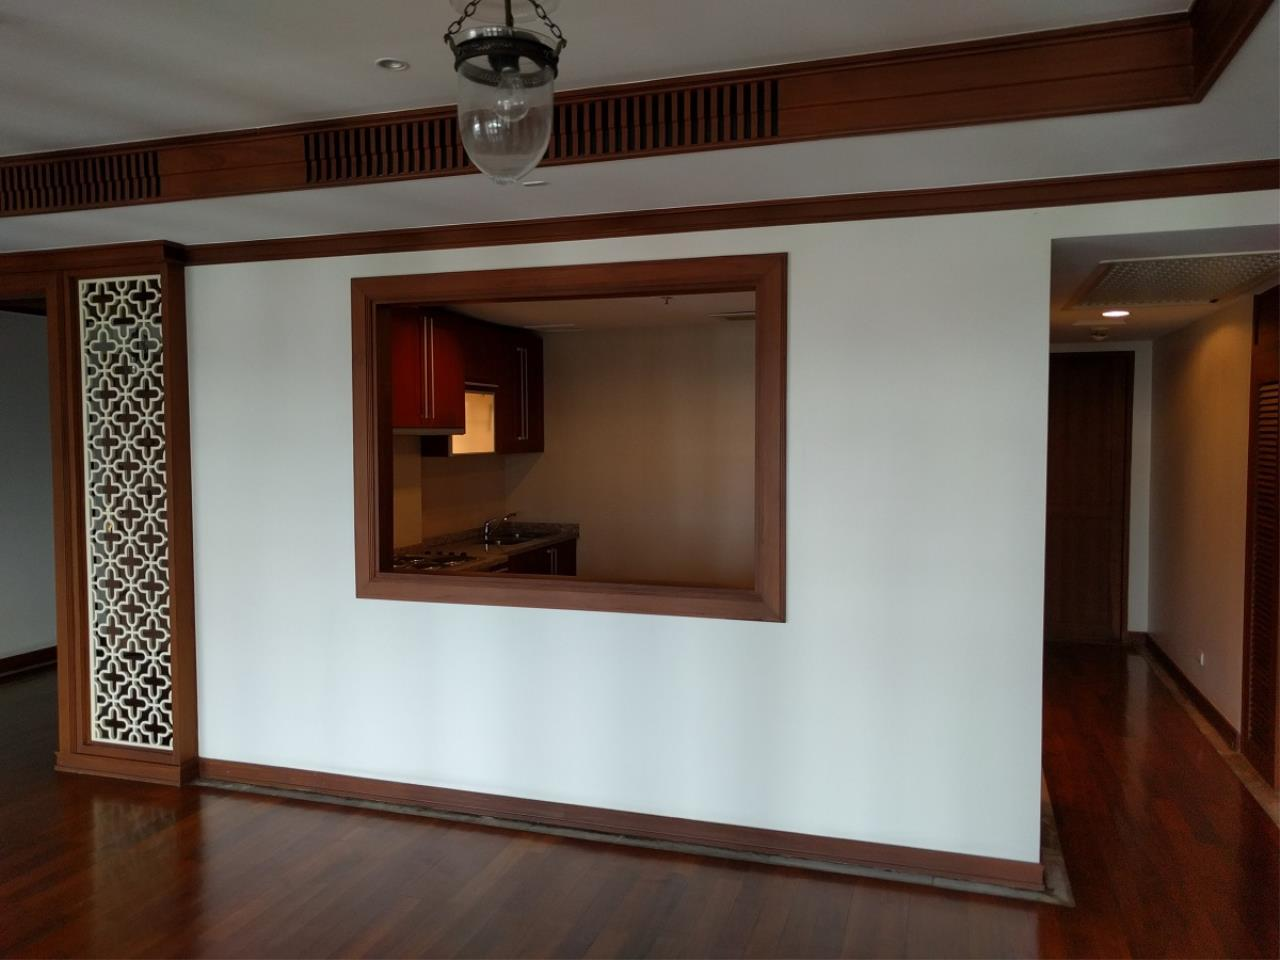 RE/MAX CondoDee Agency's Thai Elegance Luxury Condominium - Entire Building for Sale 6